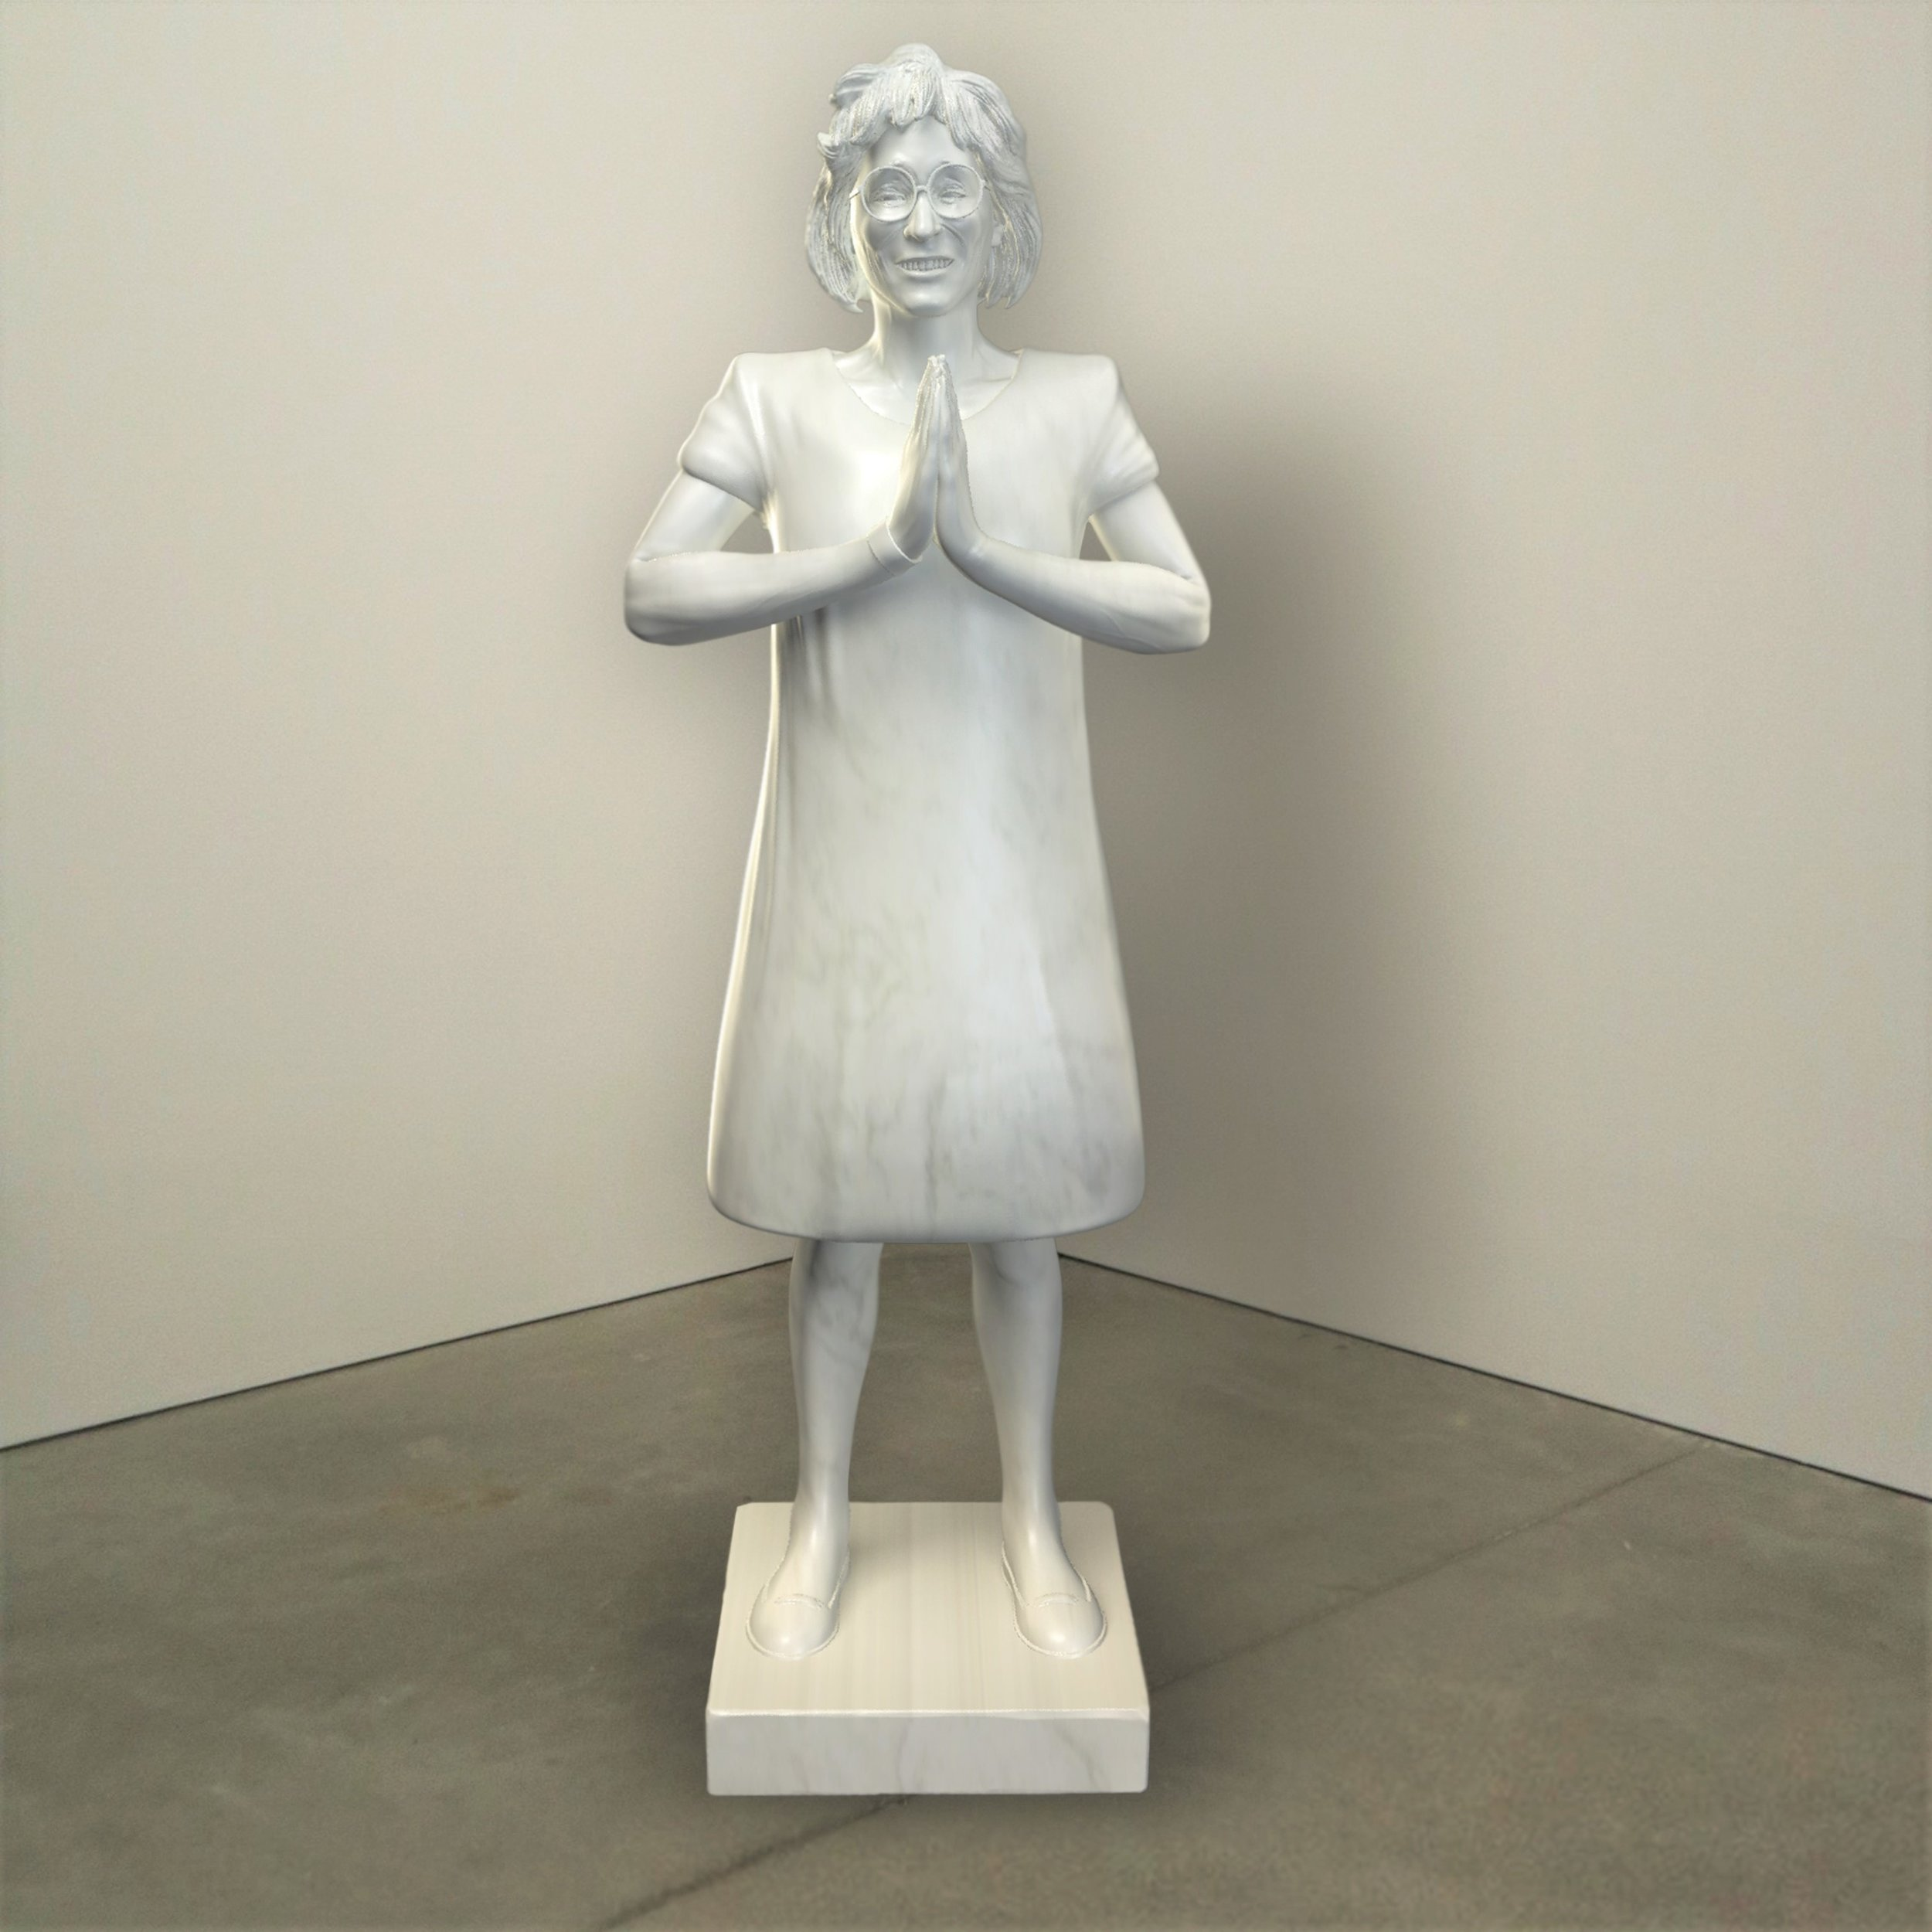 """Presence,"" marble, Institute of Contemporary Art, Boston   2018  JPG  During an installation at the Institute of Contemporary Art in Boston, viewers were invited to imagine themselves as statues in the ICA's permanent collection. Participants were photographed posing as a statue they felt represented themselves, created a name for their fictional statue, and selected a stone from which their statue would be made. Professional and amateur digital artists were commissioned to create renderings of the statues, which were superimposed on photos of the ICA's permanent collection gallery space."